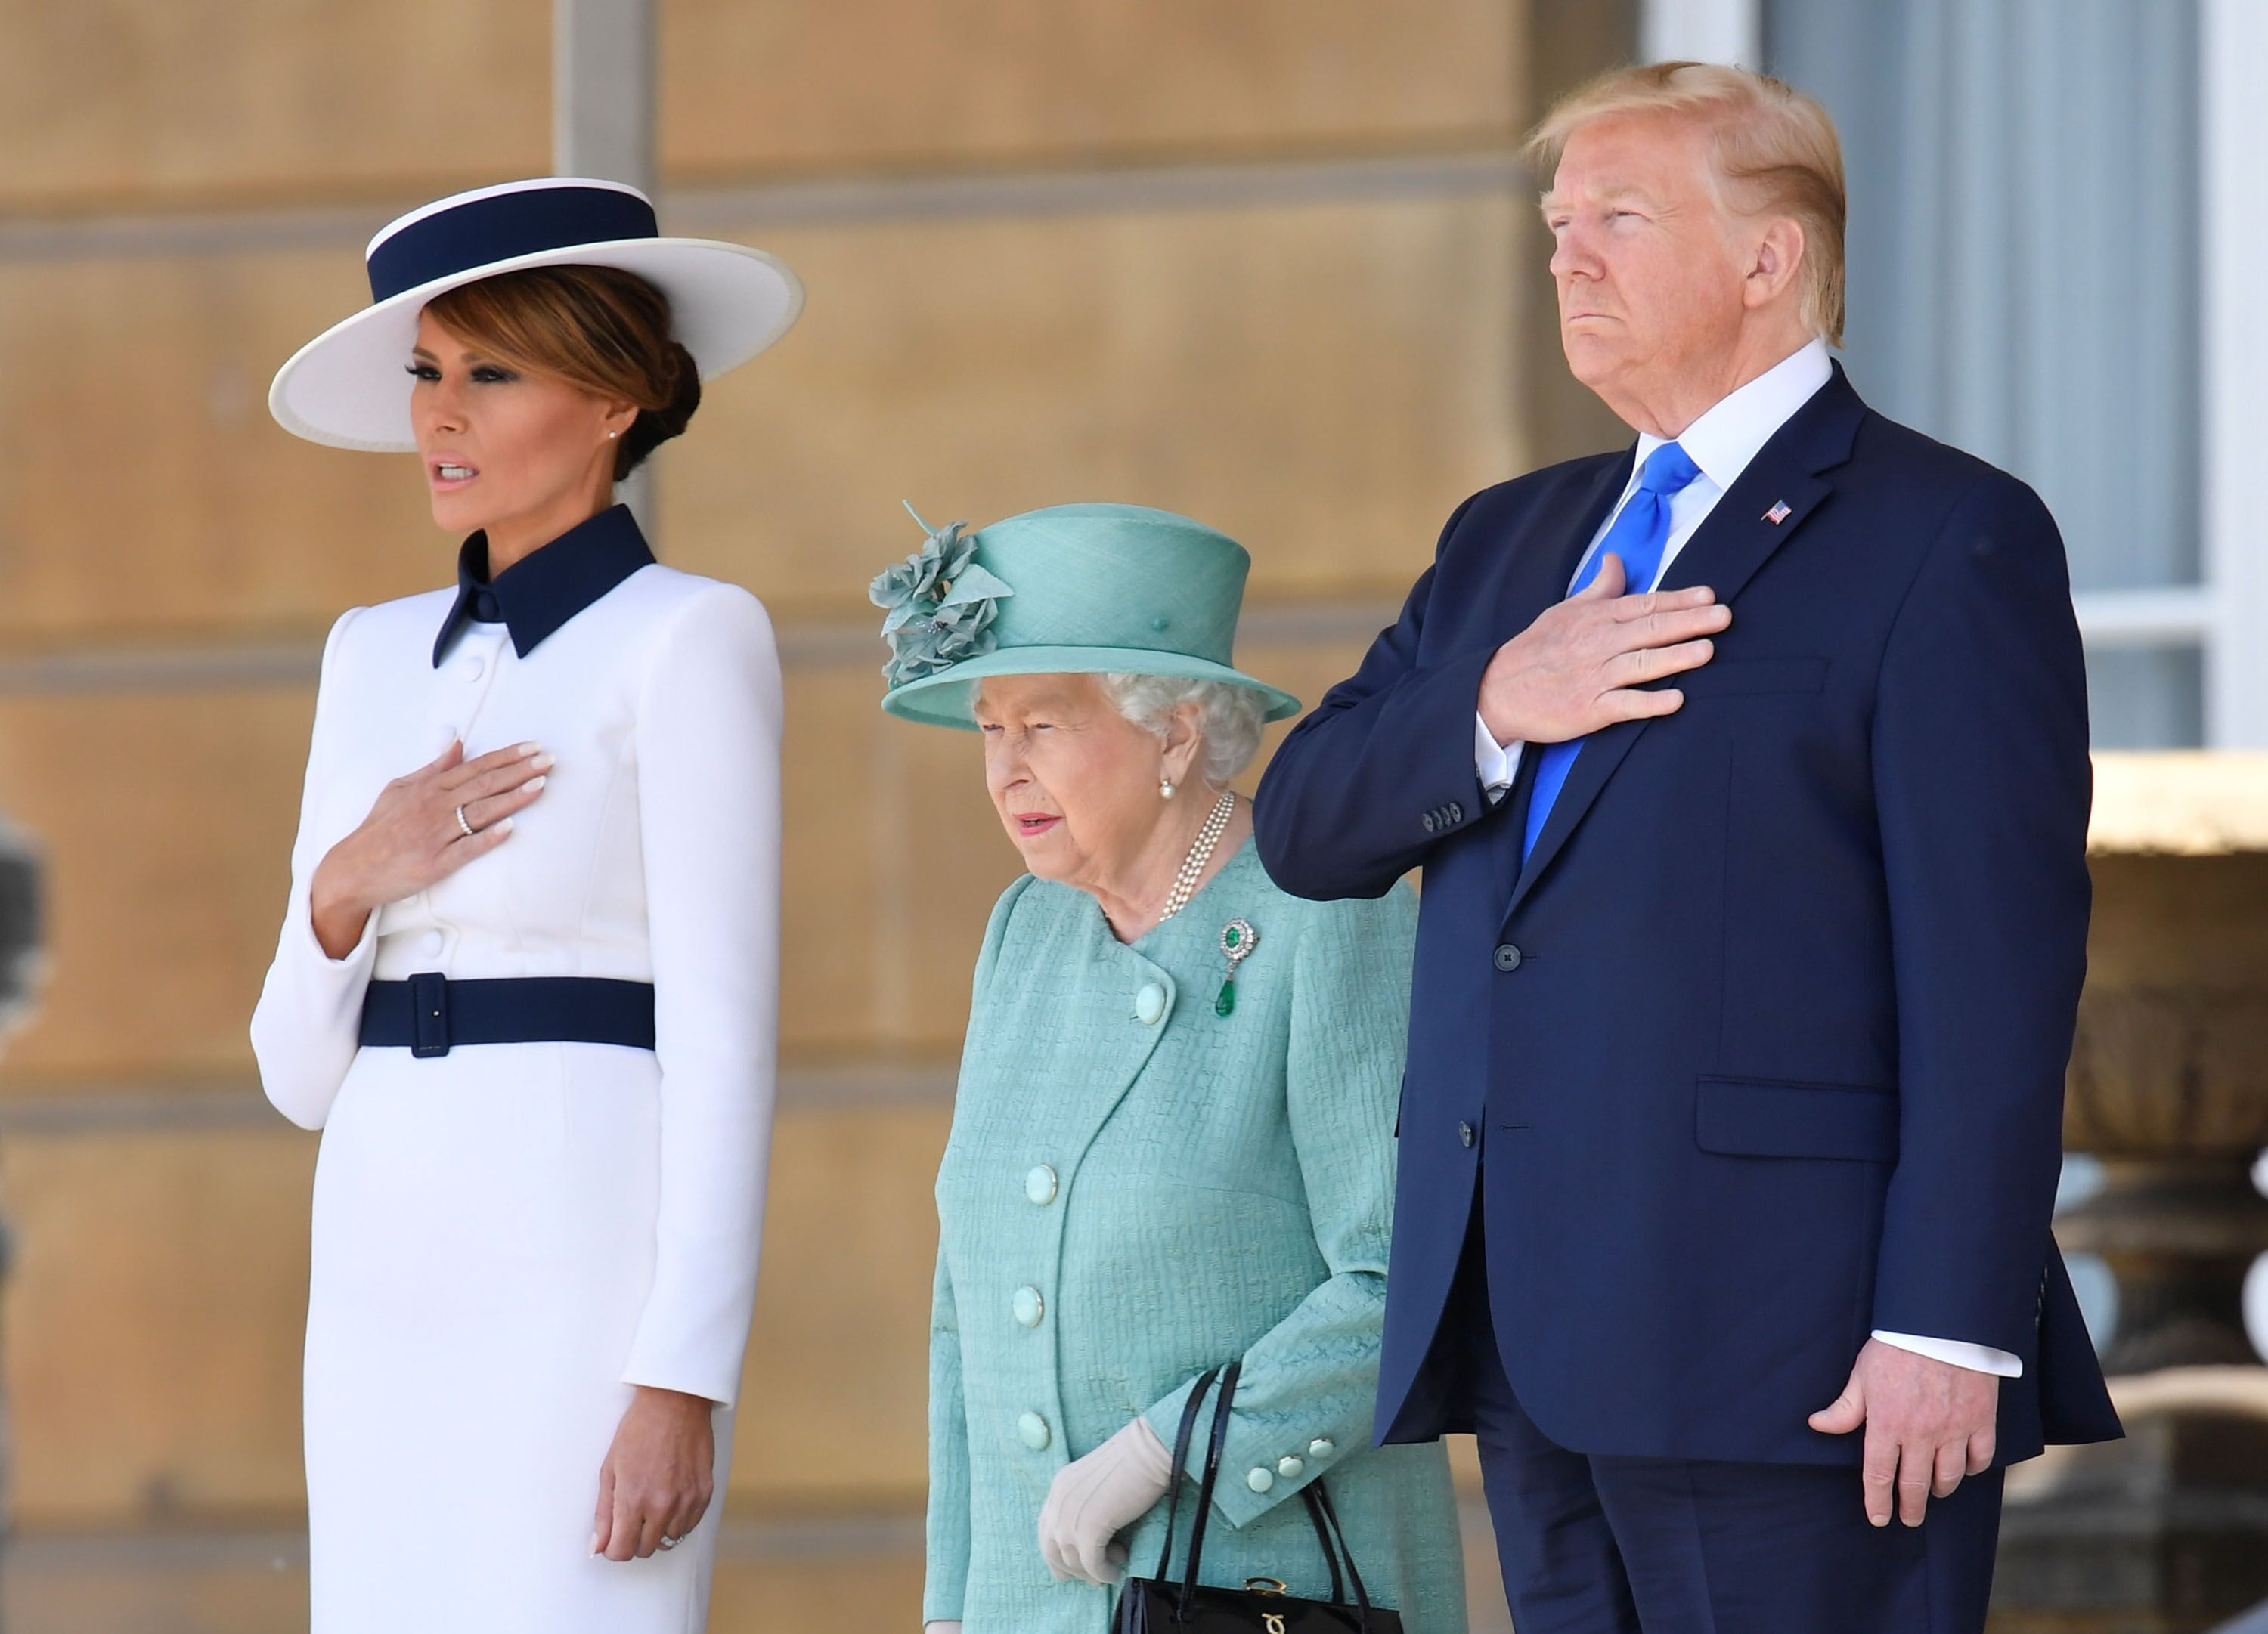 Melania Trump, Queen Elizabeth II and U.S. President Donald Trump at the Ceremonial Welcome in Buckingham Palace in 2019 | Source: Getty Images